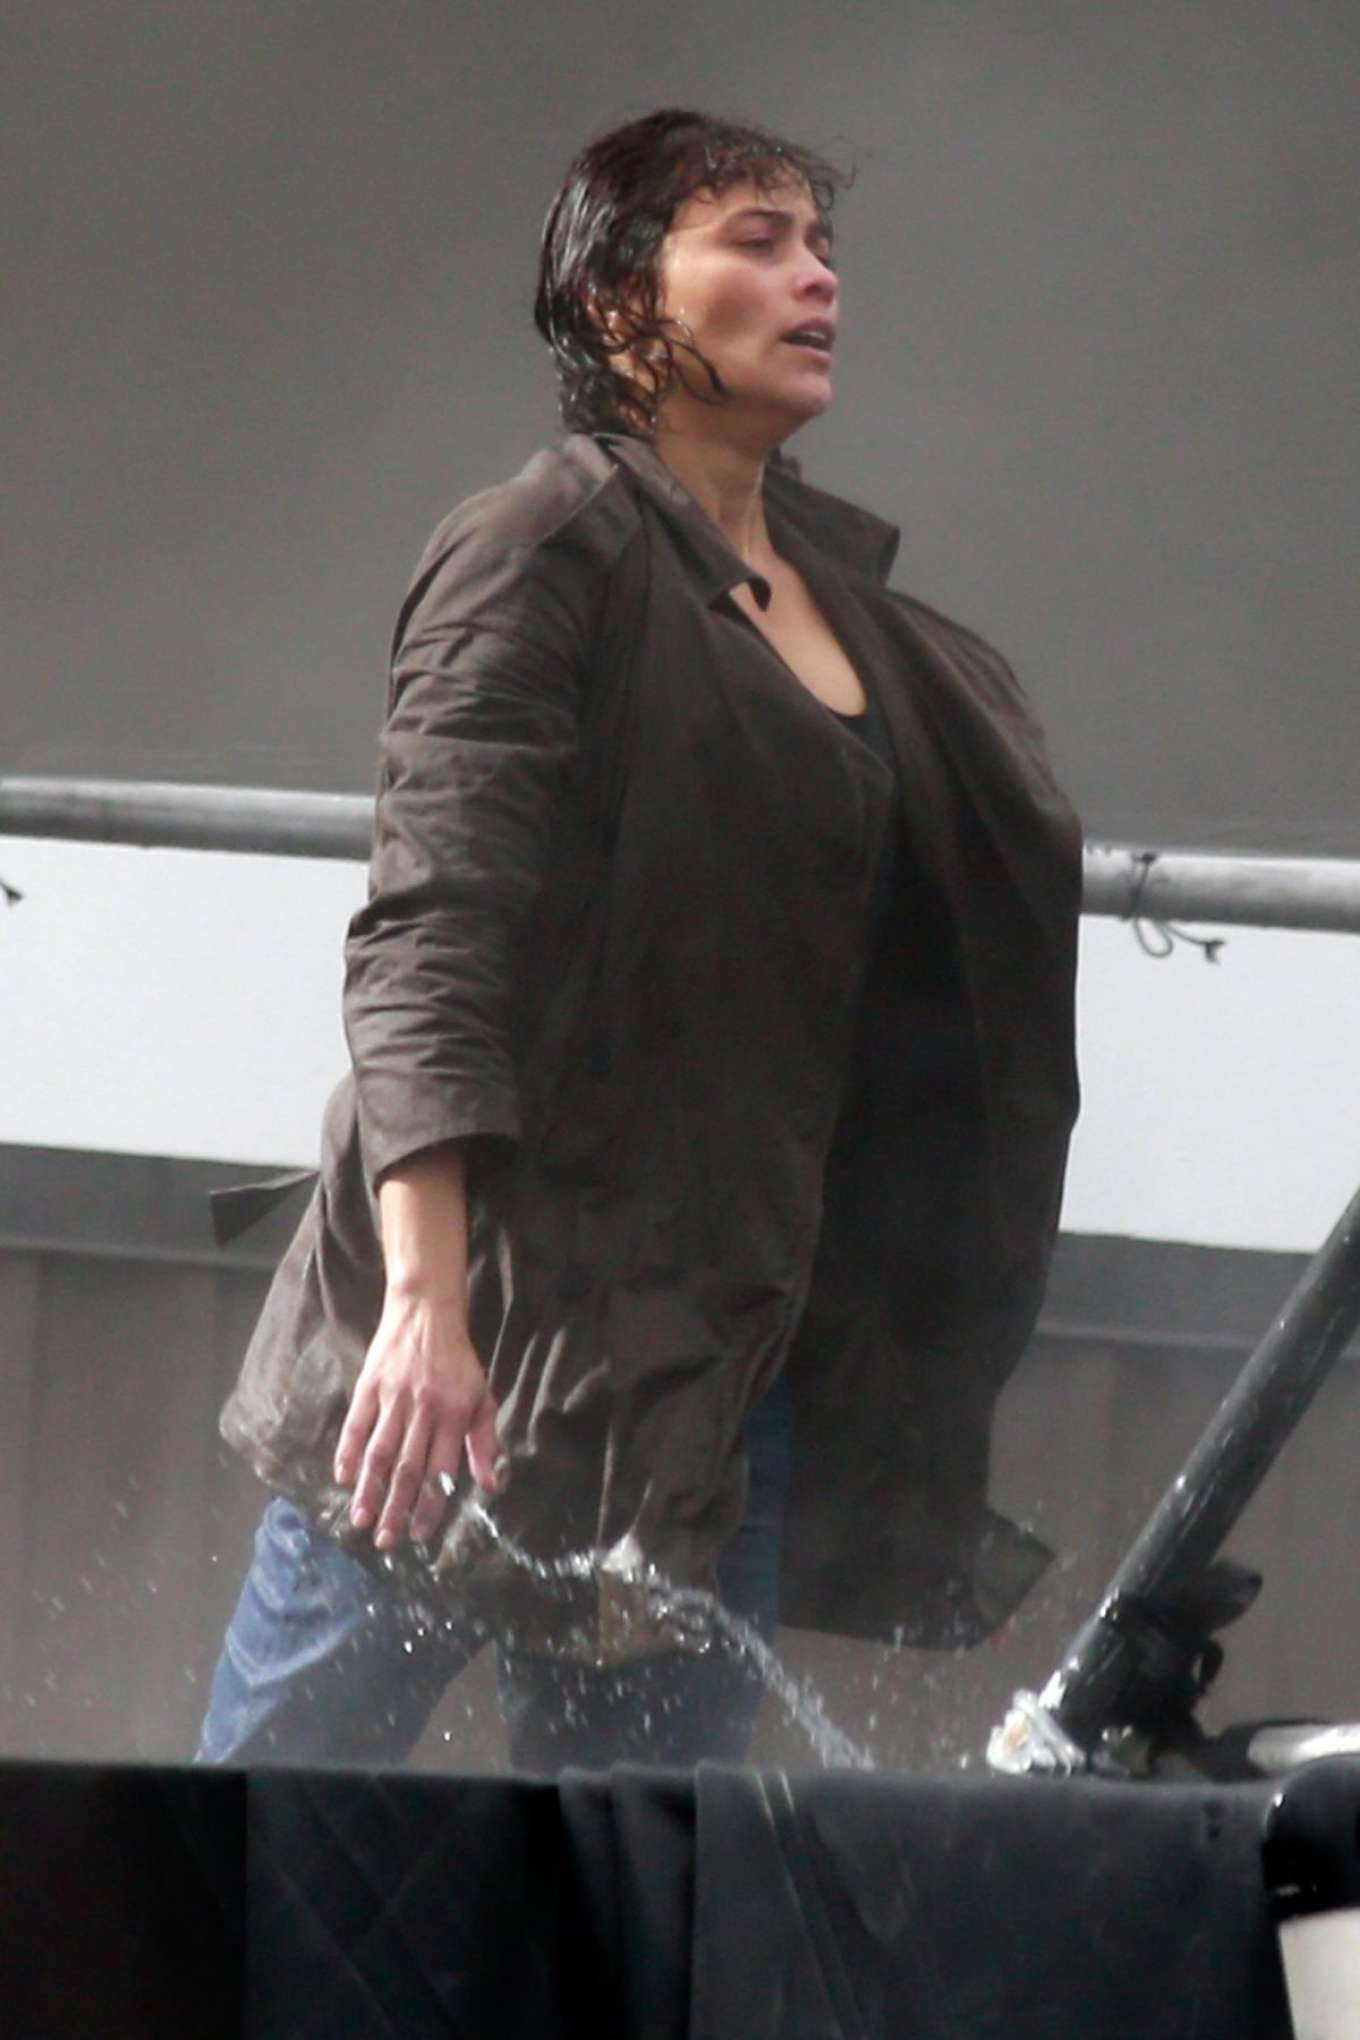 Paula Patton - Filming 'Spmwhere Between' set in Vancouver